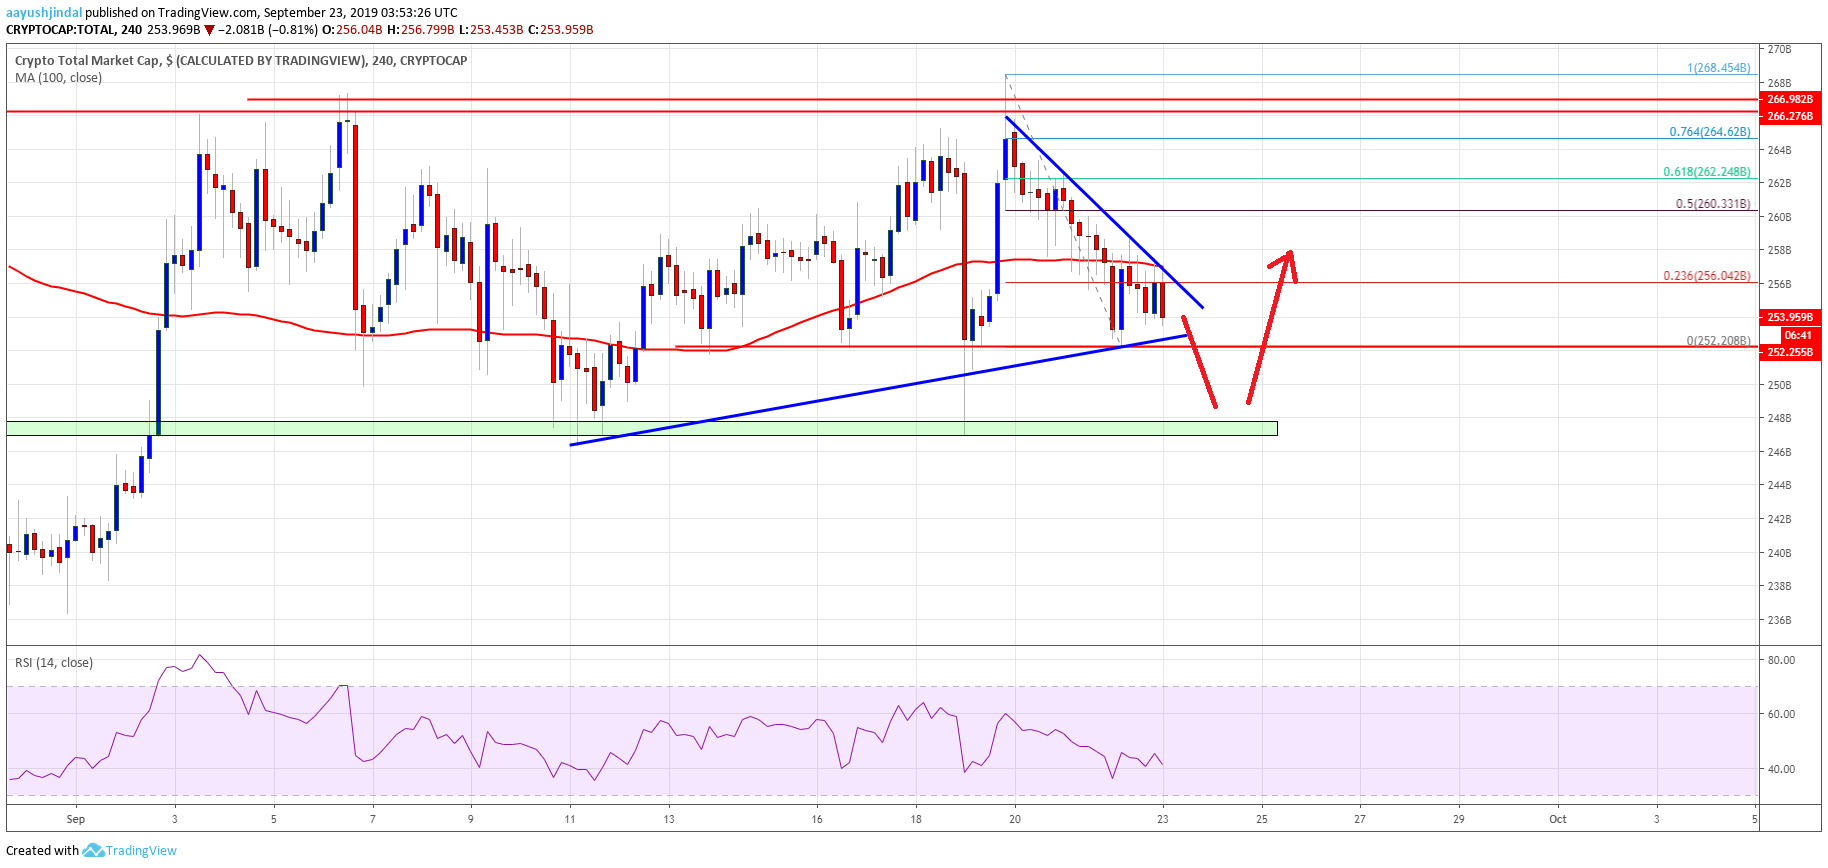 Crypto Market & Bitcoin Could Extend Losses: BCH, EOS, TRX, ADA Analysis